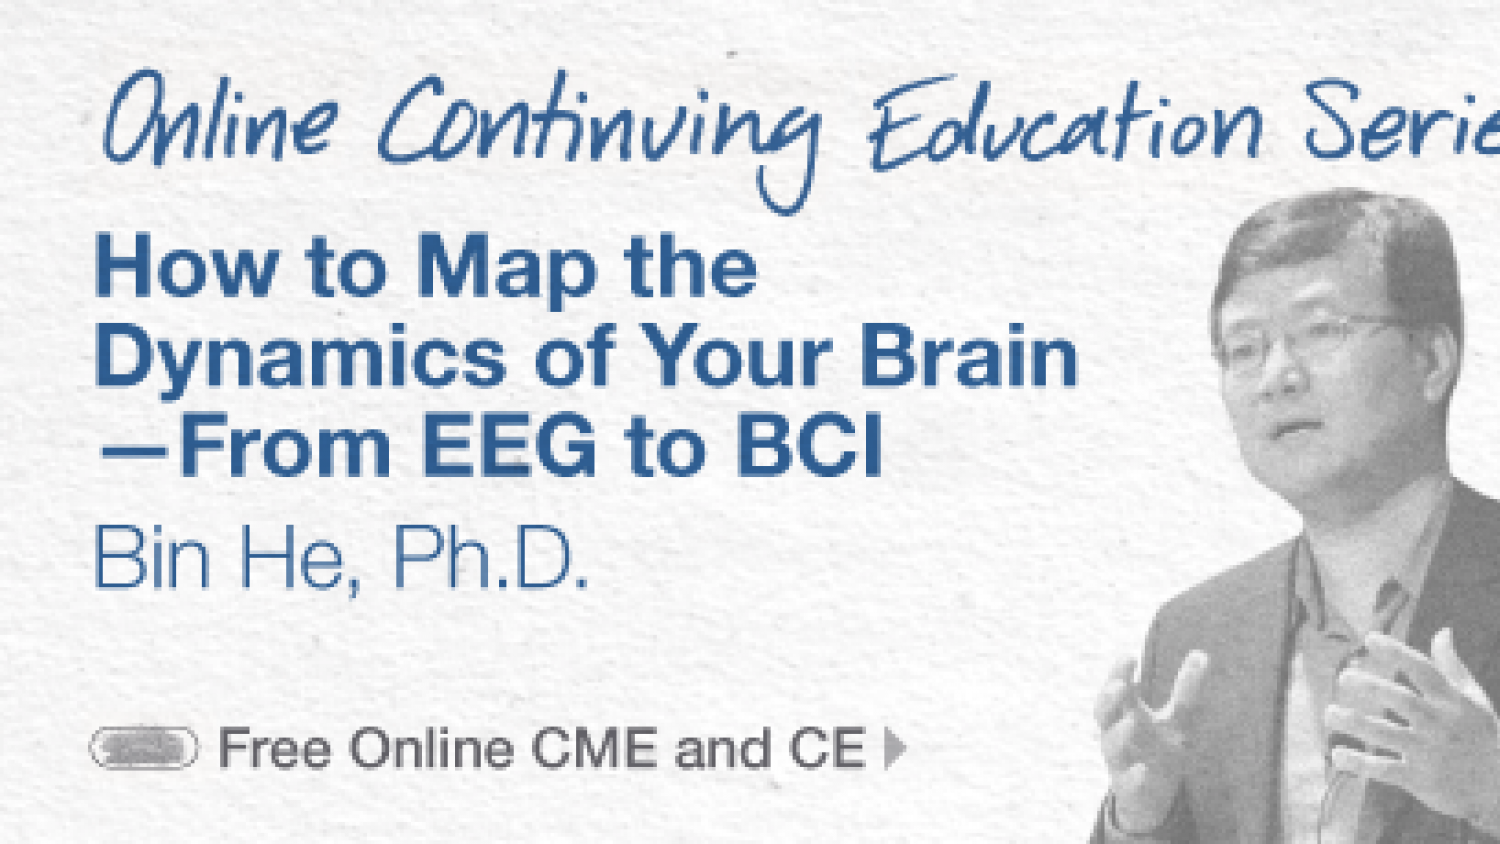 Online continuing Education Series: How to Map the Dynamics of Your Brain - From EEG to BCI; Bin He, Ph.D. (Free Online CME and CE)